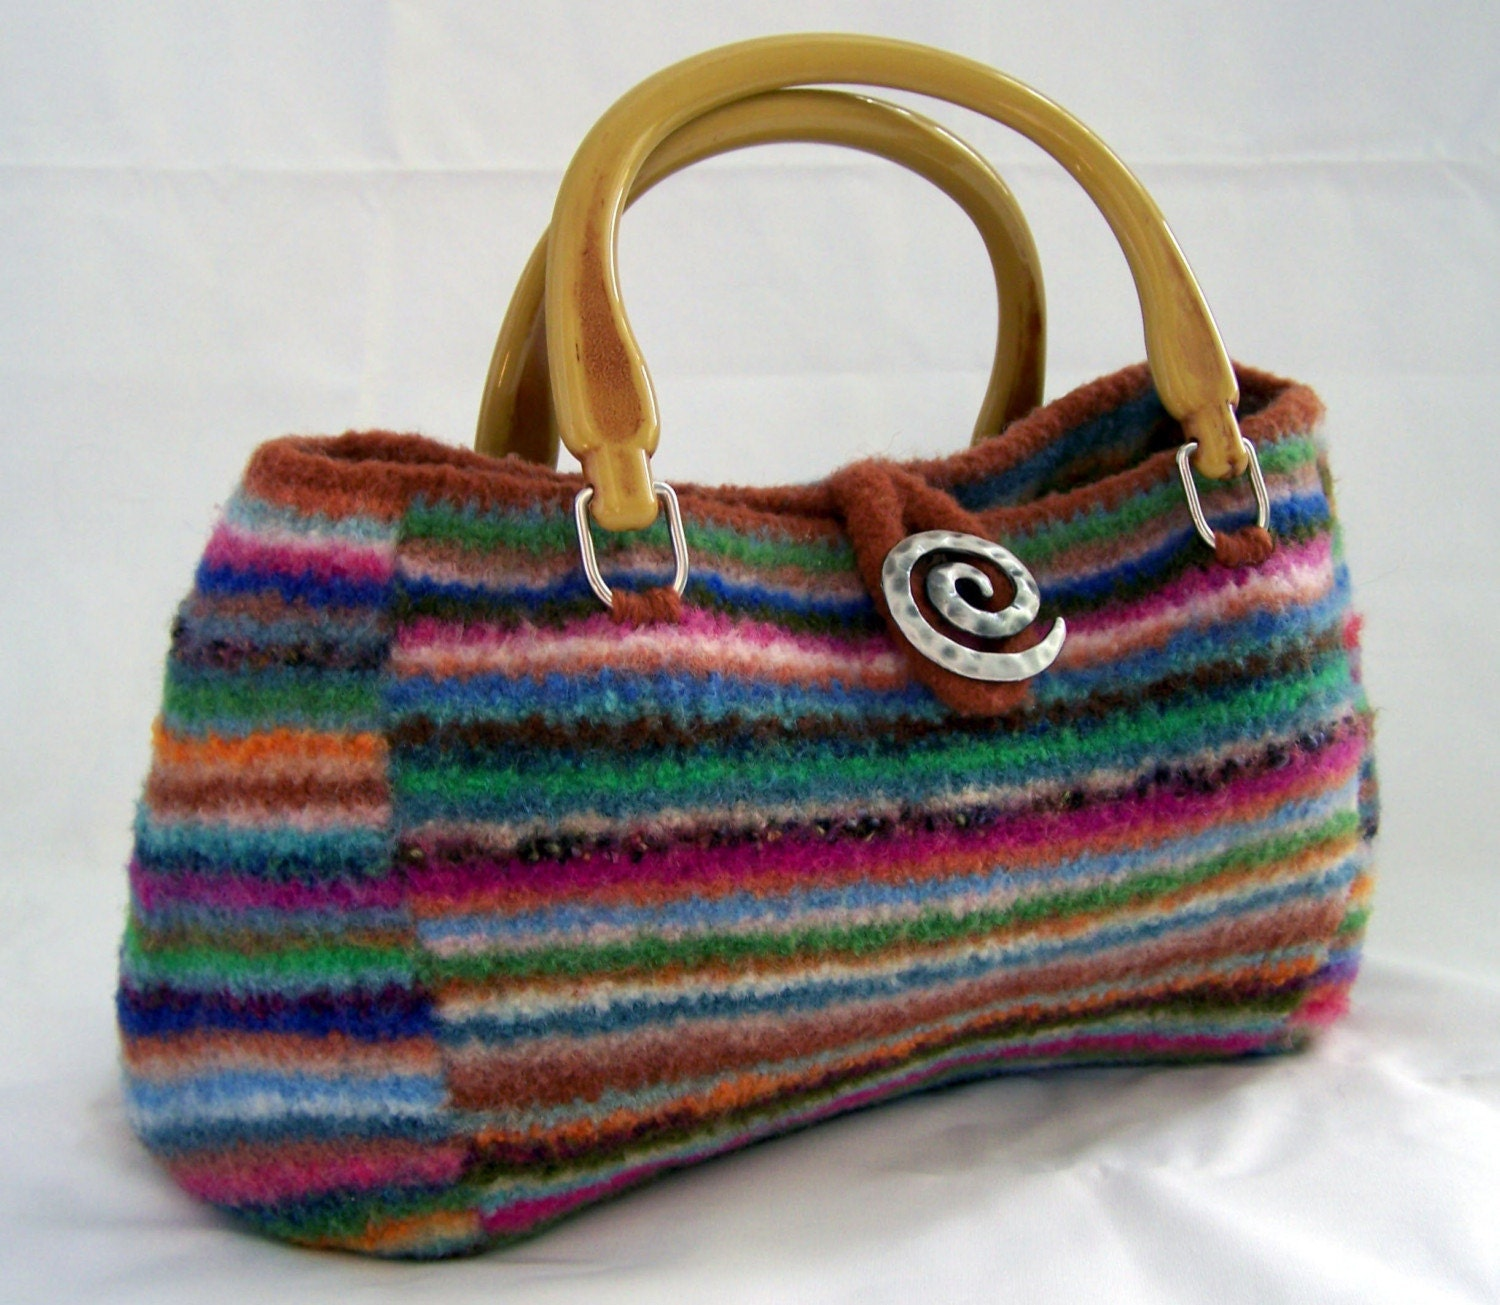 Knitting Bag Pattern : Knitting PATTERN Felted Doctor Bag Purse Satchel (PDF - instant ...